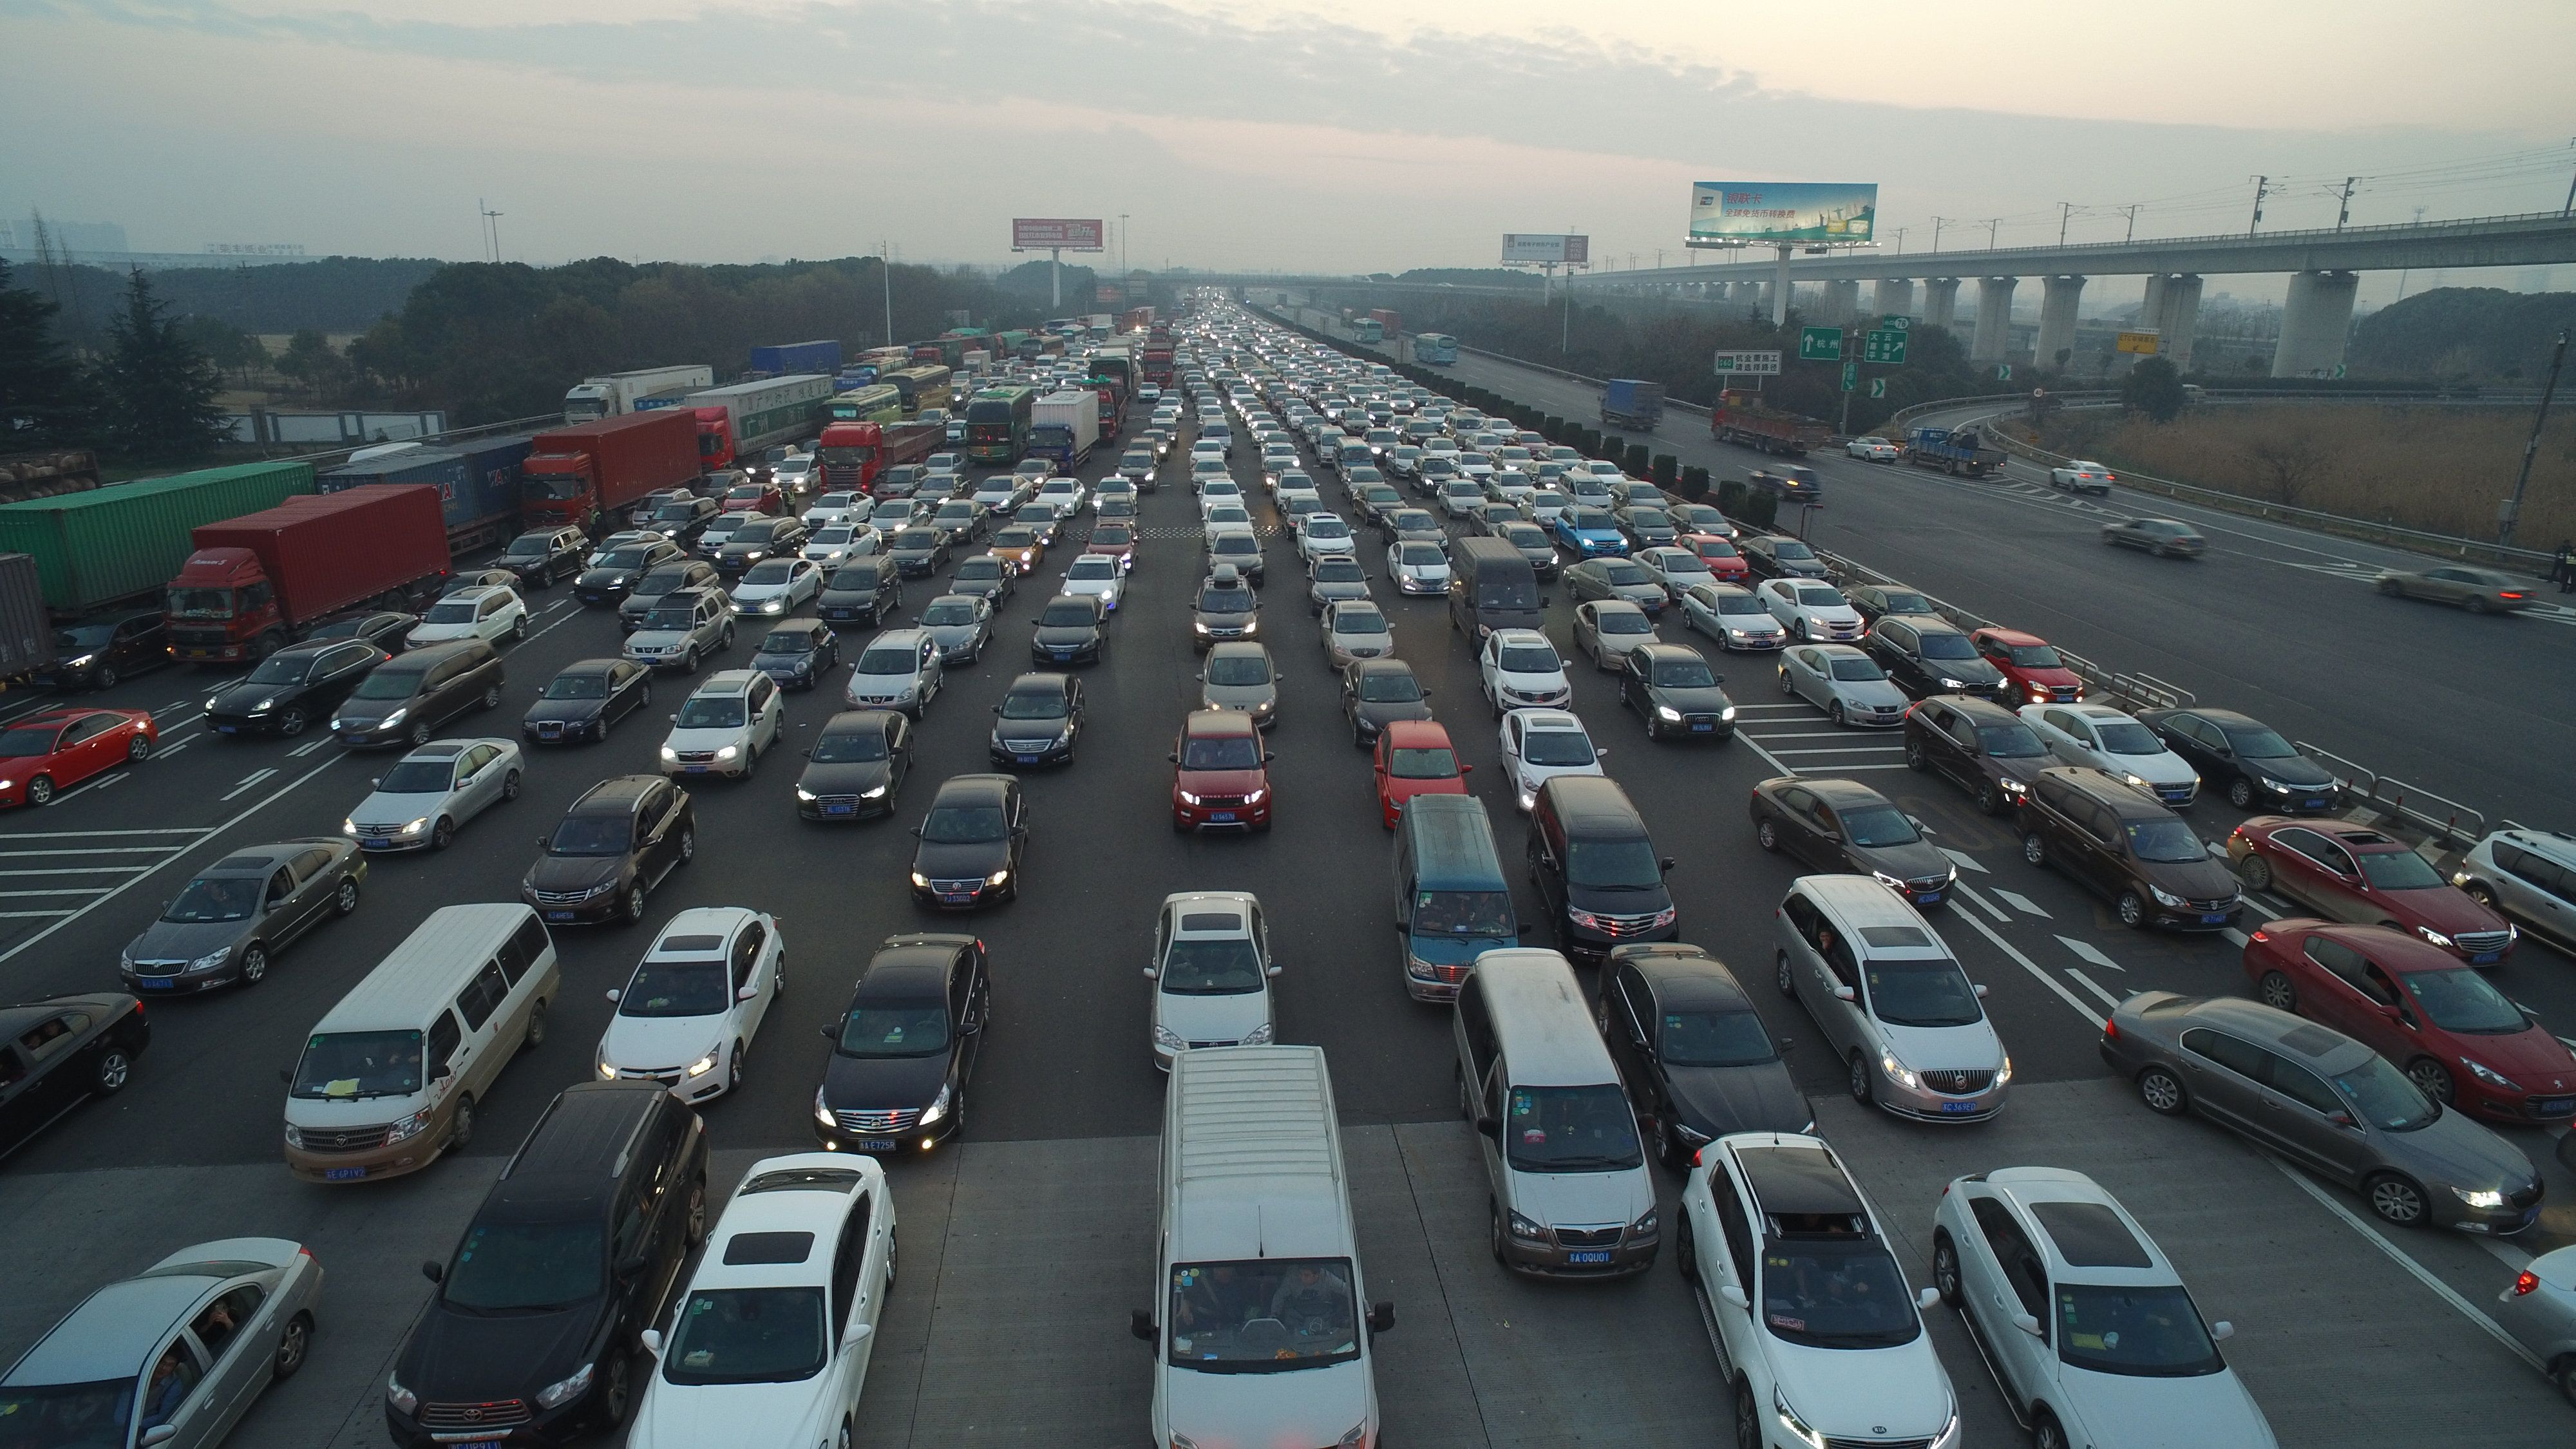 JIAXING, CHINA - JANUARY 03:  (CHINA OUT) Picture shows the traffic jam at a toll station on G60 Shanghai-Kunming Expressway at the end of New Year's Day holiday on January 3, 2016 in Jiaxing, Zhejiang Province of China. People driving back after the 3-day holiday of the New Year's Day caused a 3-kilometer traffic jam at a toll station on G60 Shanghai-Kunming Expressway in Jiaxing.  (Photo by ChinaFotoPress/ChinaFotoPress via Getty Images)